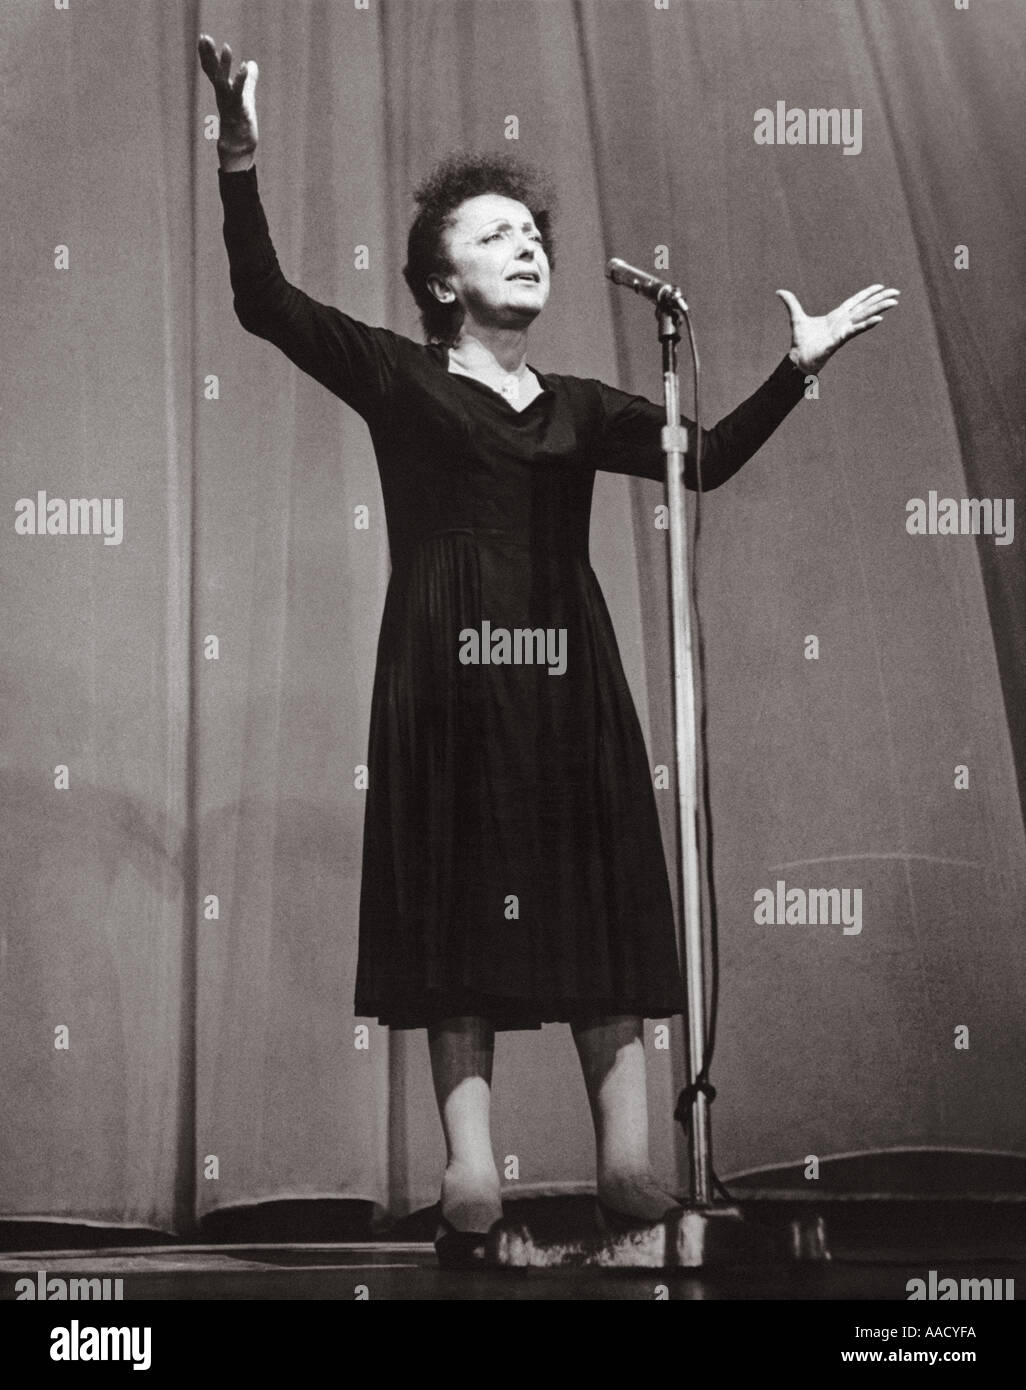 EDITH PIAF French singer 1915 1963 - Stock Image